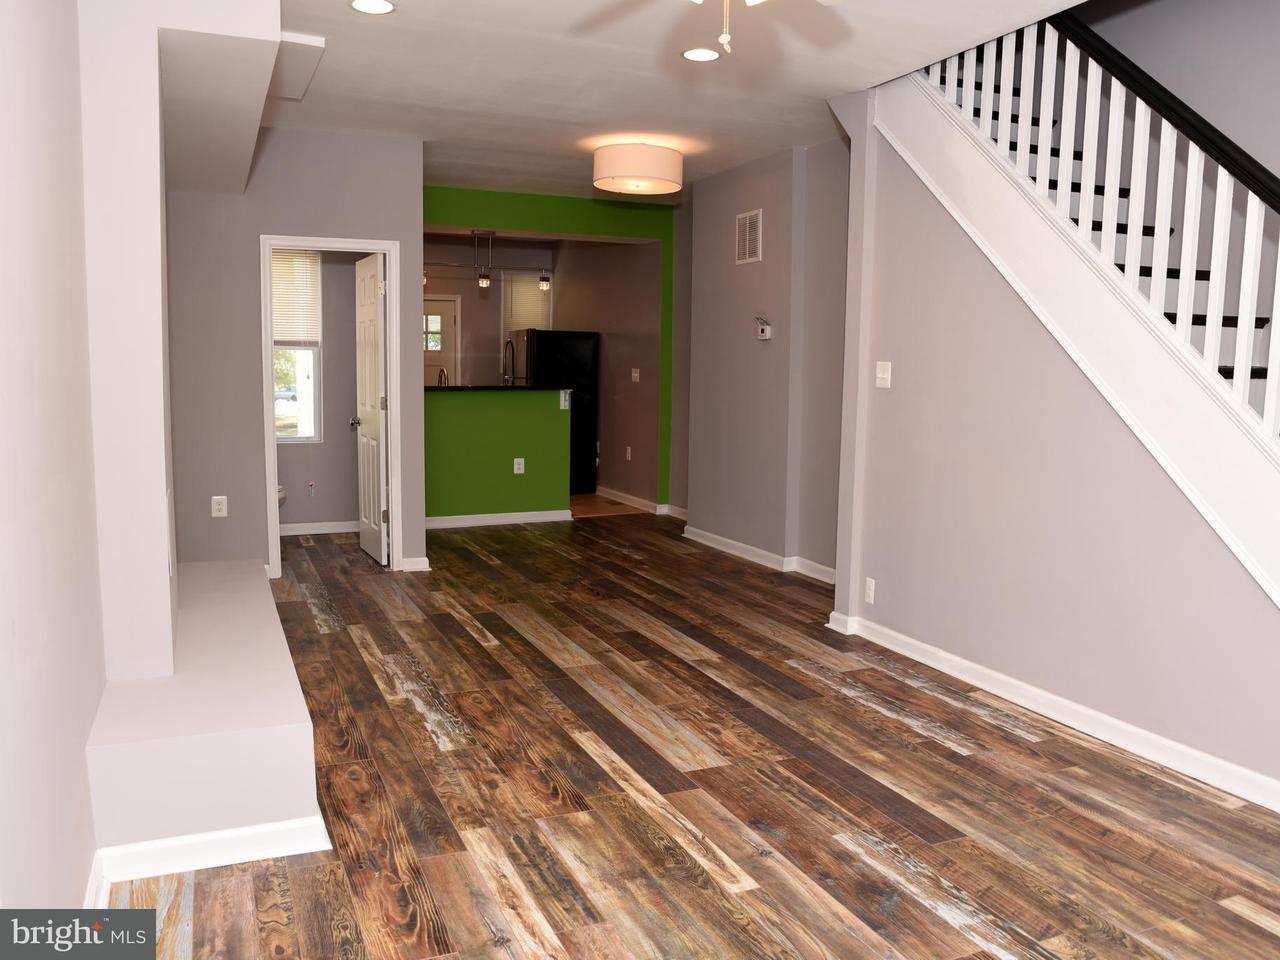 Single Family for Sale at 2457 Westport St Baltimore, Maryland 21230 United States